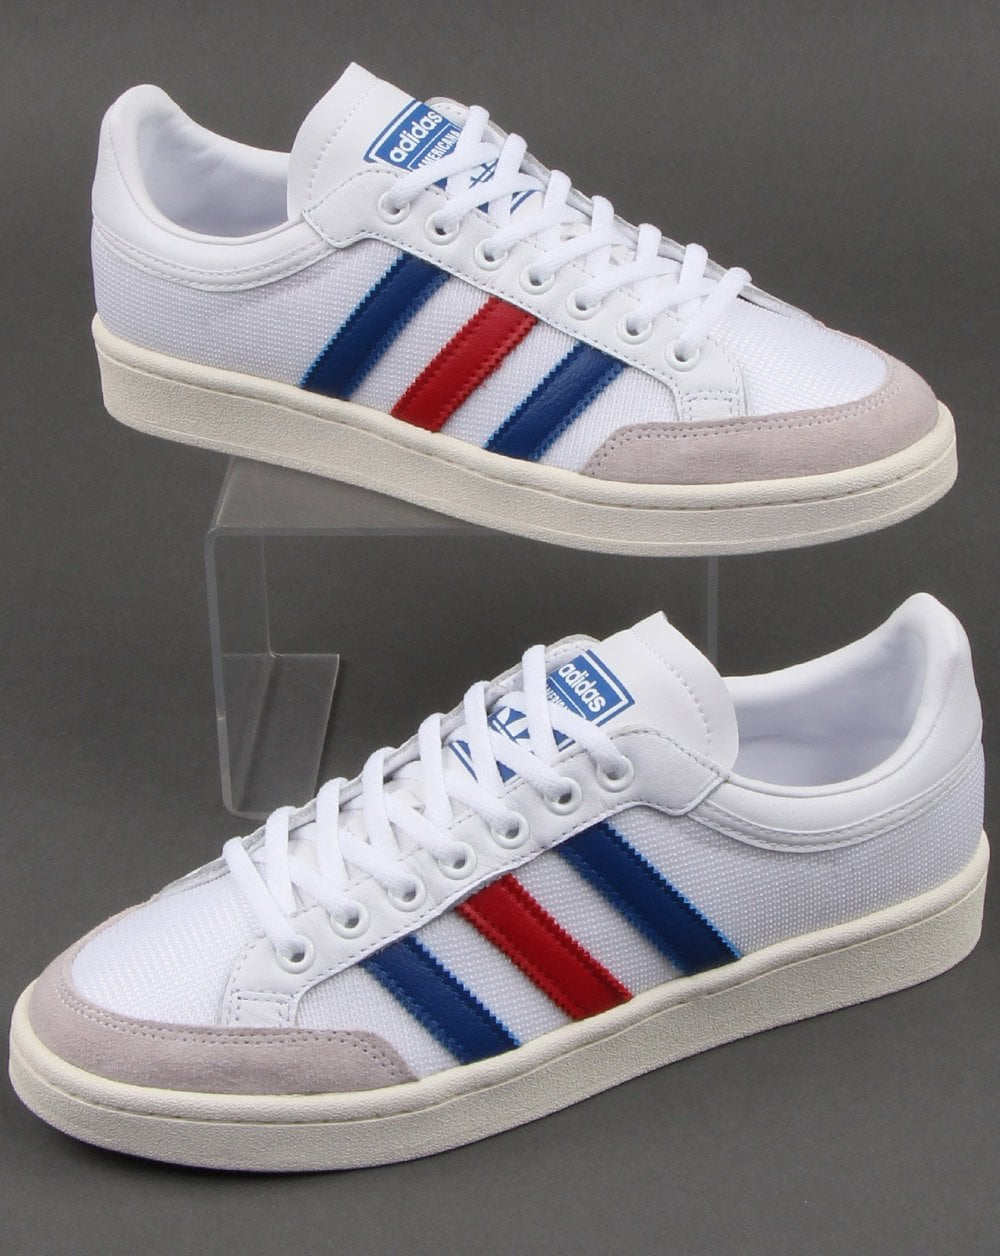 Adidas Low Low Whiteroyalred Adidas Trainers Adidas Low Americana Trainers Whiteroyalred Americana Americana D2YWEIH9